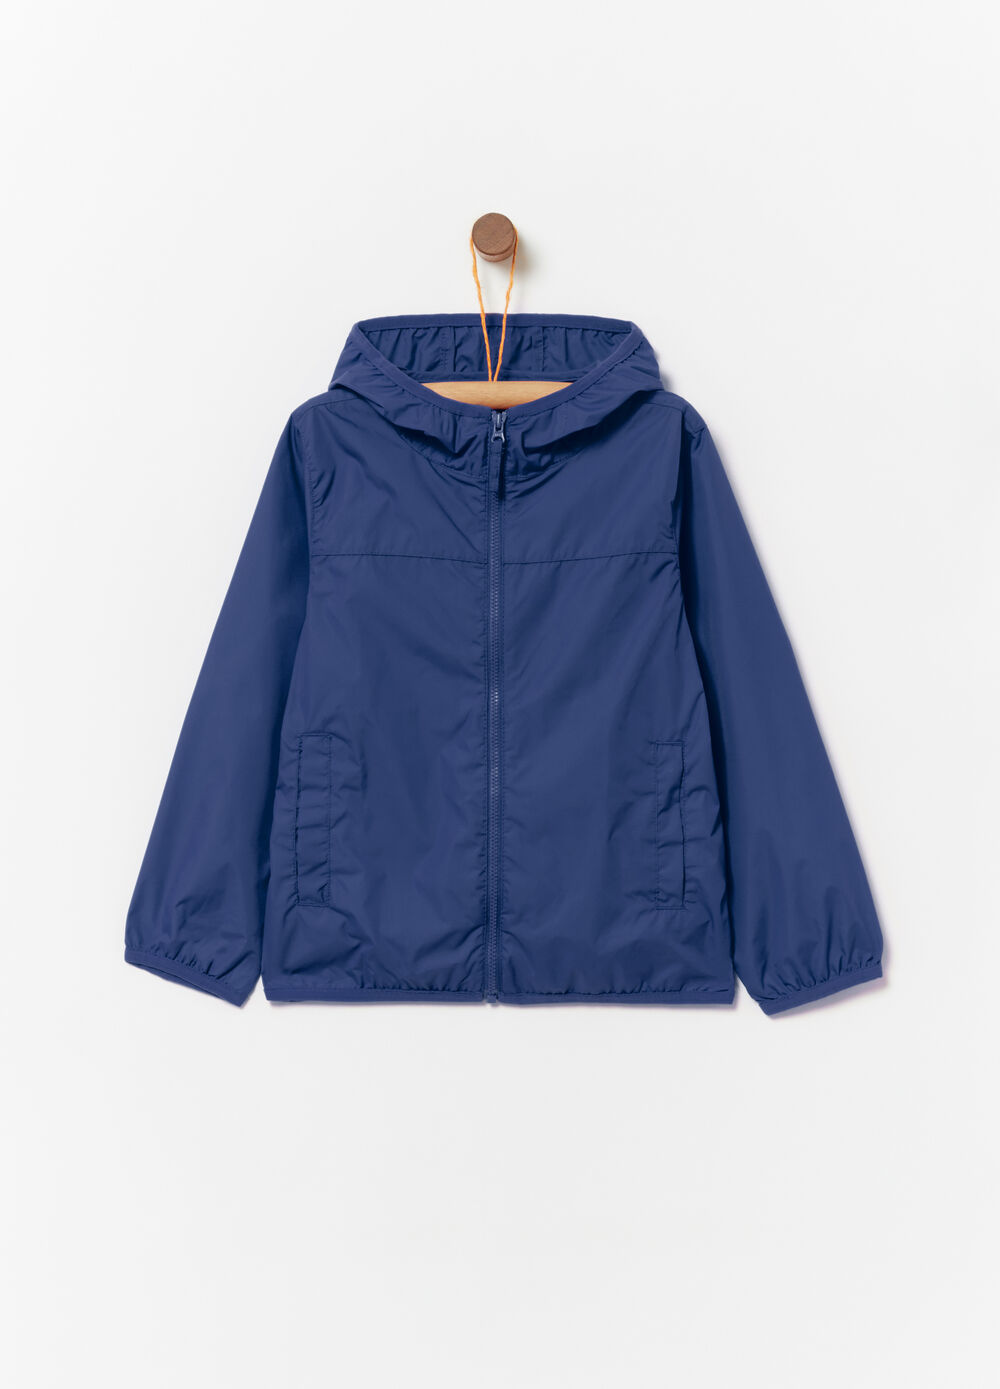 Unlined nylon rain jacket